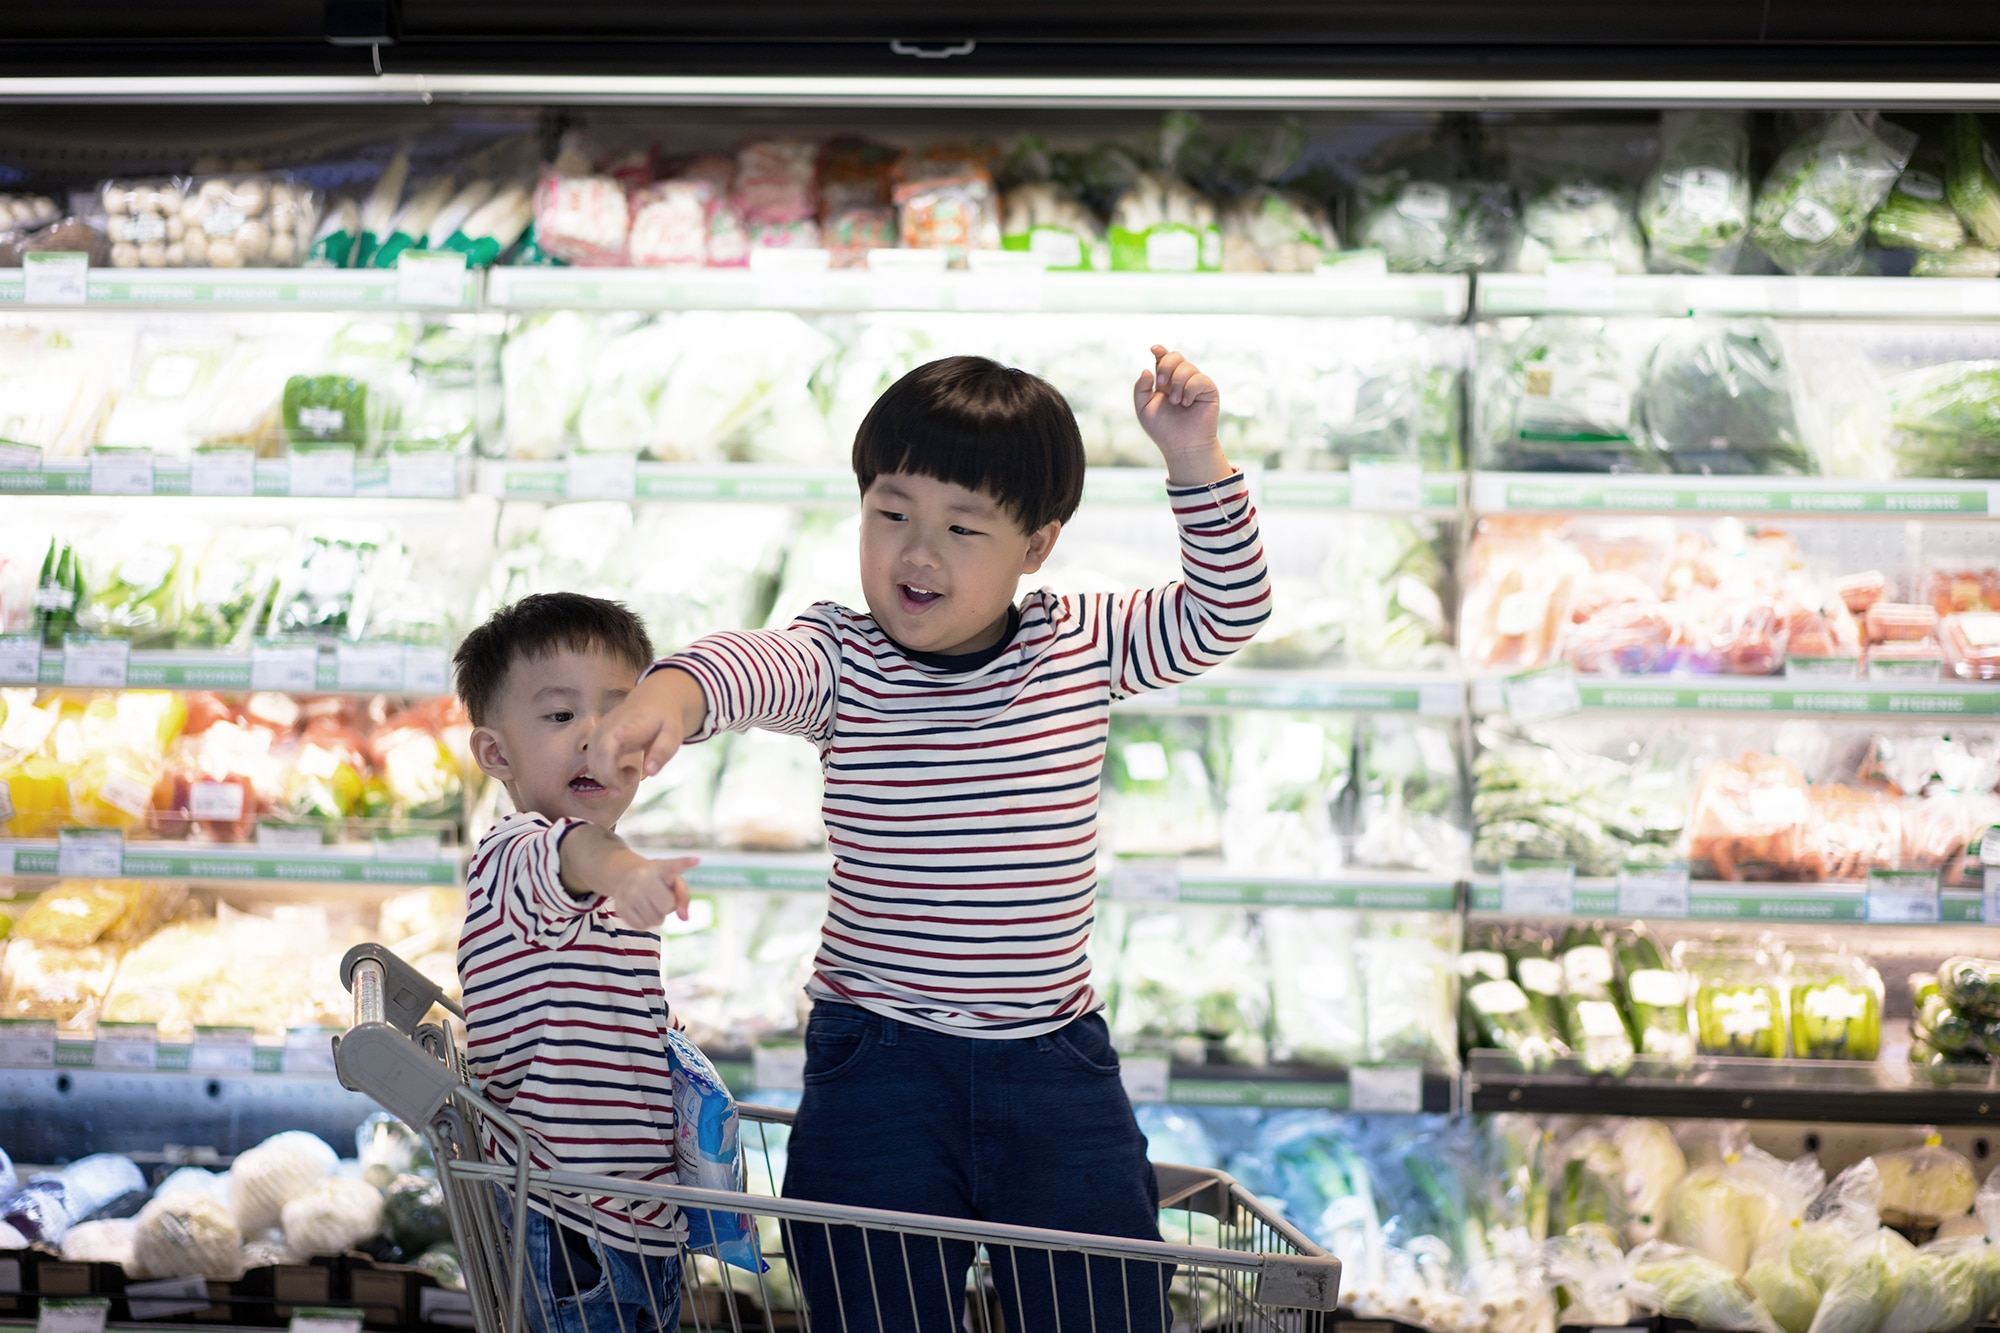 Two boys pointing their fingers at different directions during a grocery store trip